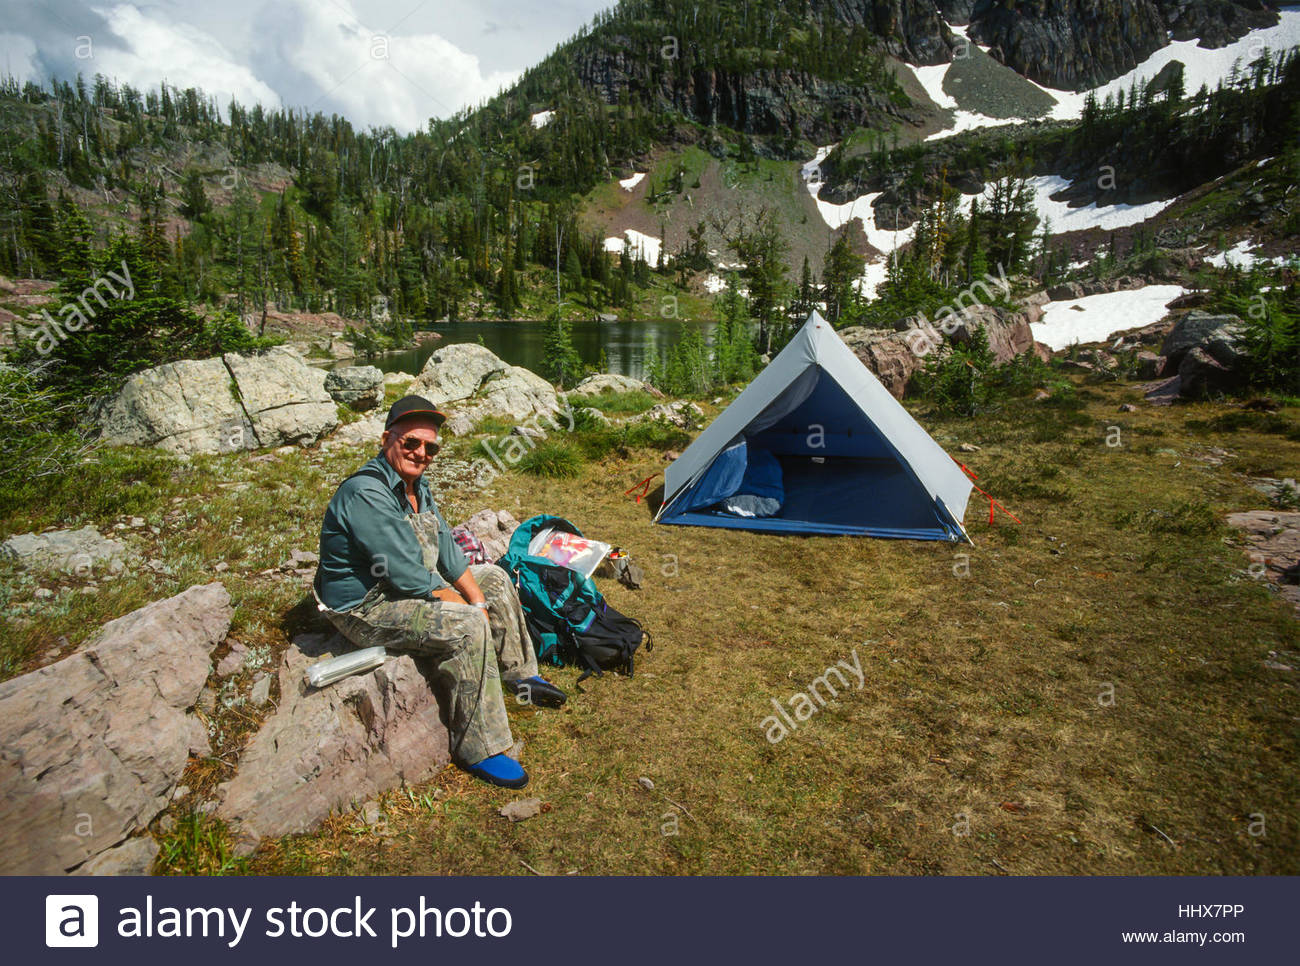 Older Man Resting Sitting on a Rock Next to His Backpacking Tent C&ing at a Small mountain Lake & Older Man Resting Sitting on a Rock Next to His Backpacking Tent ...